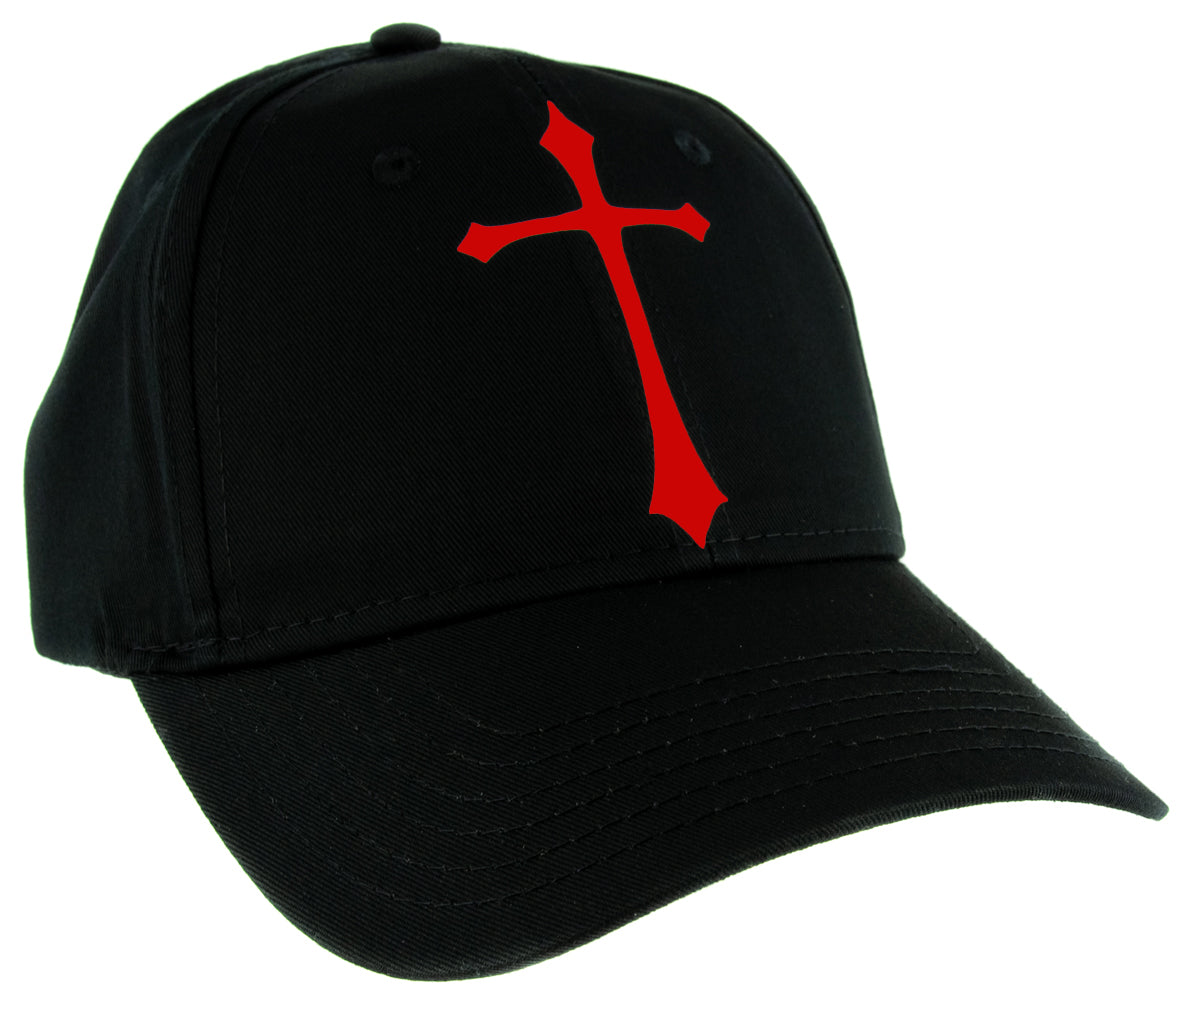 Red Medieval Holy Gothic Cross Hat Baseball Cap Deathrock Alternative Clothing Snapback